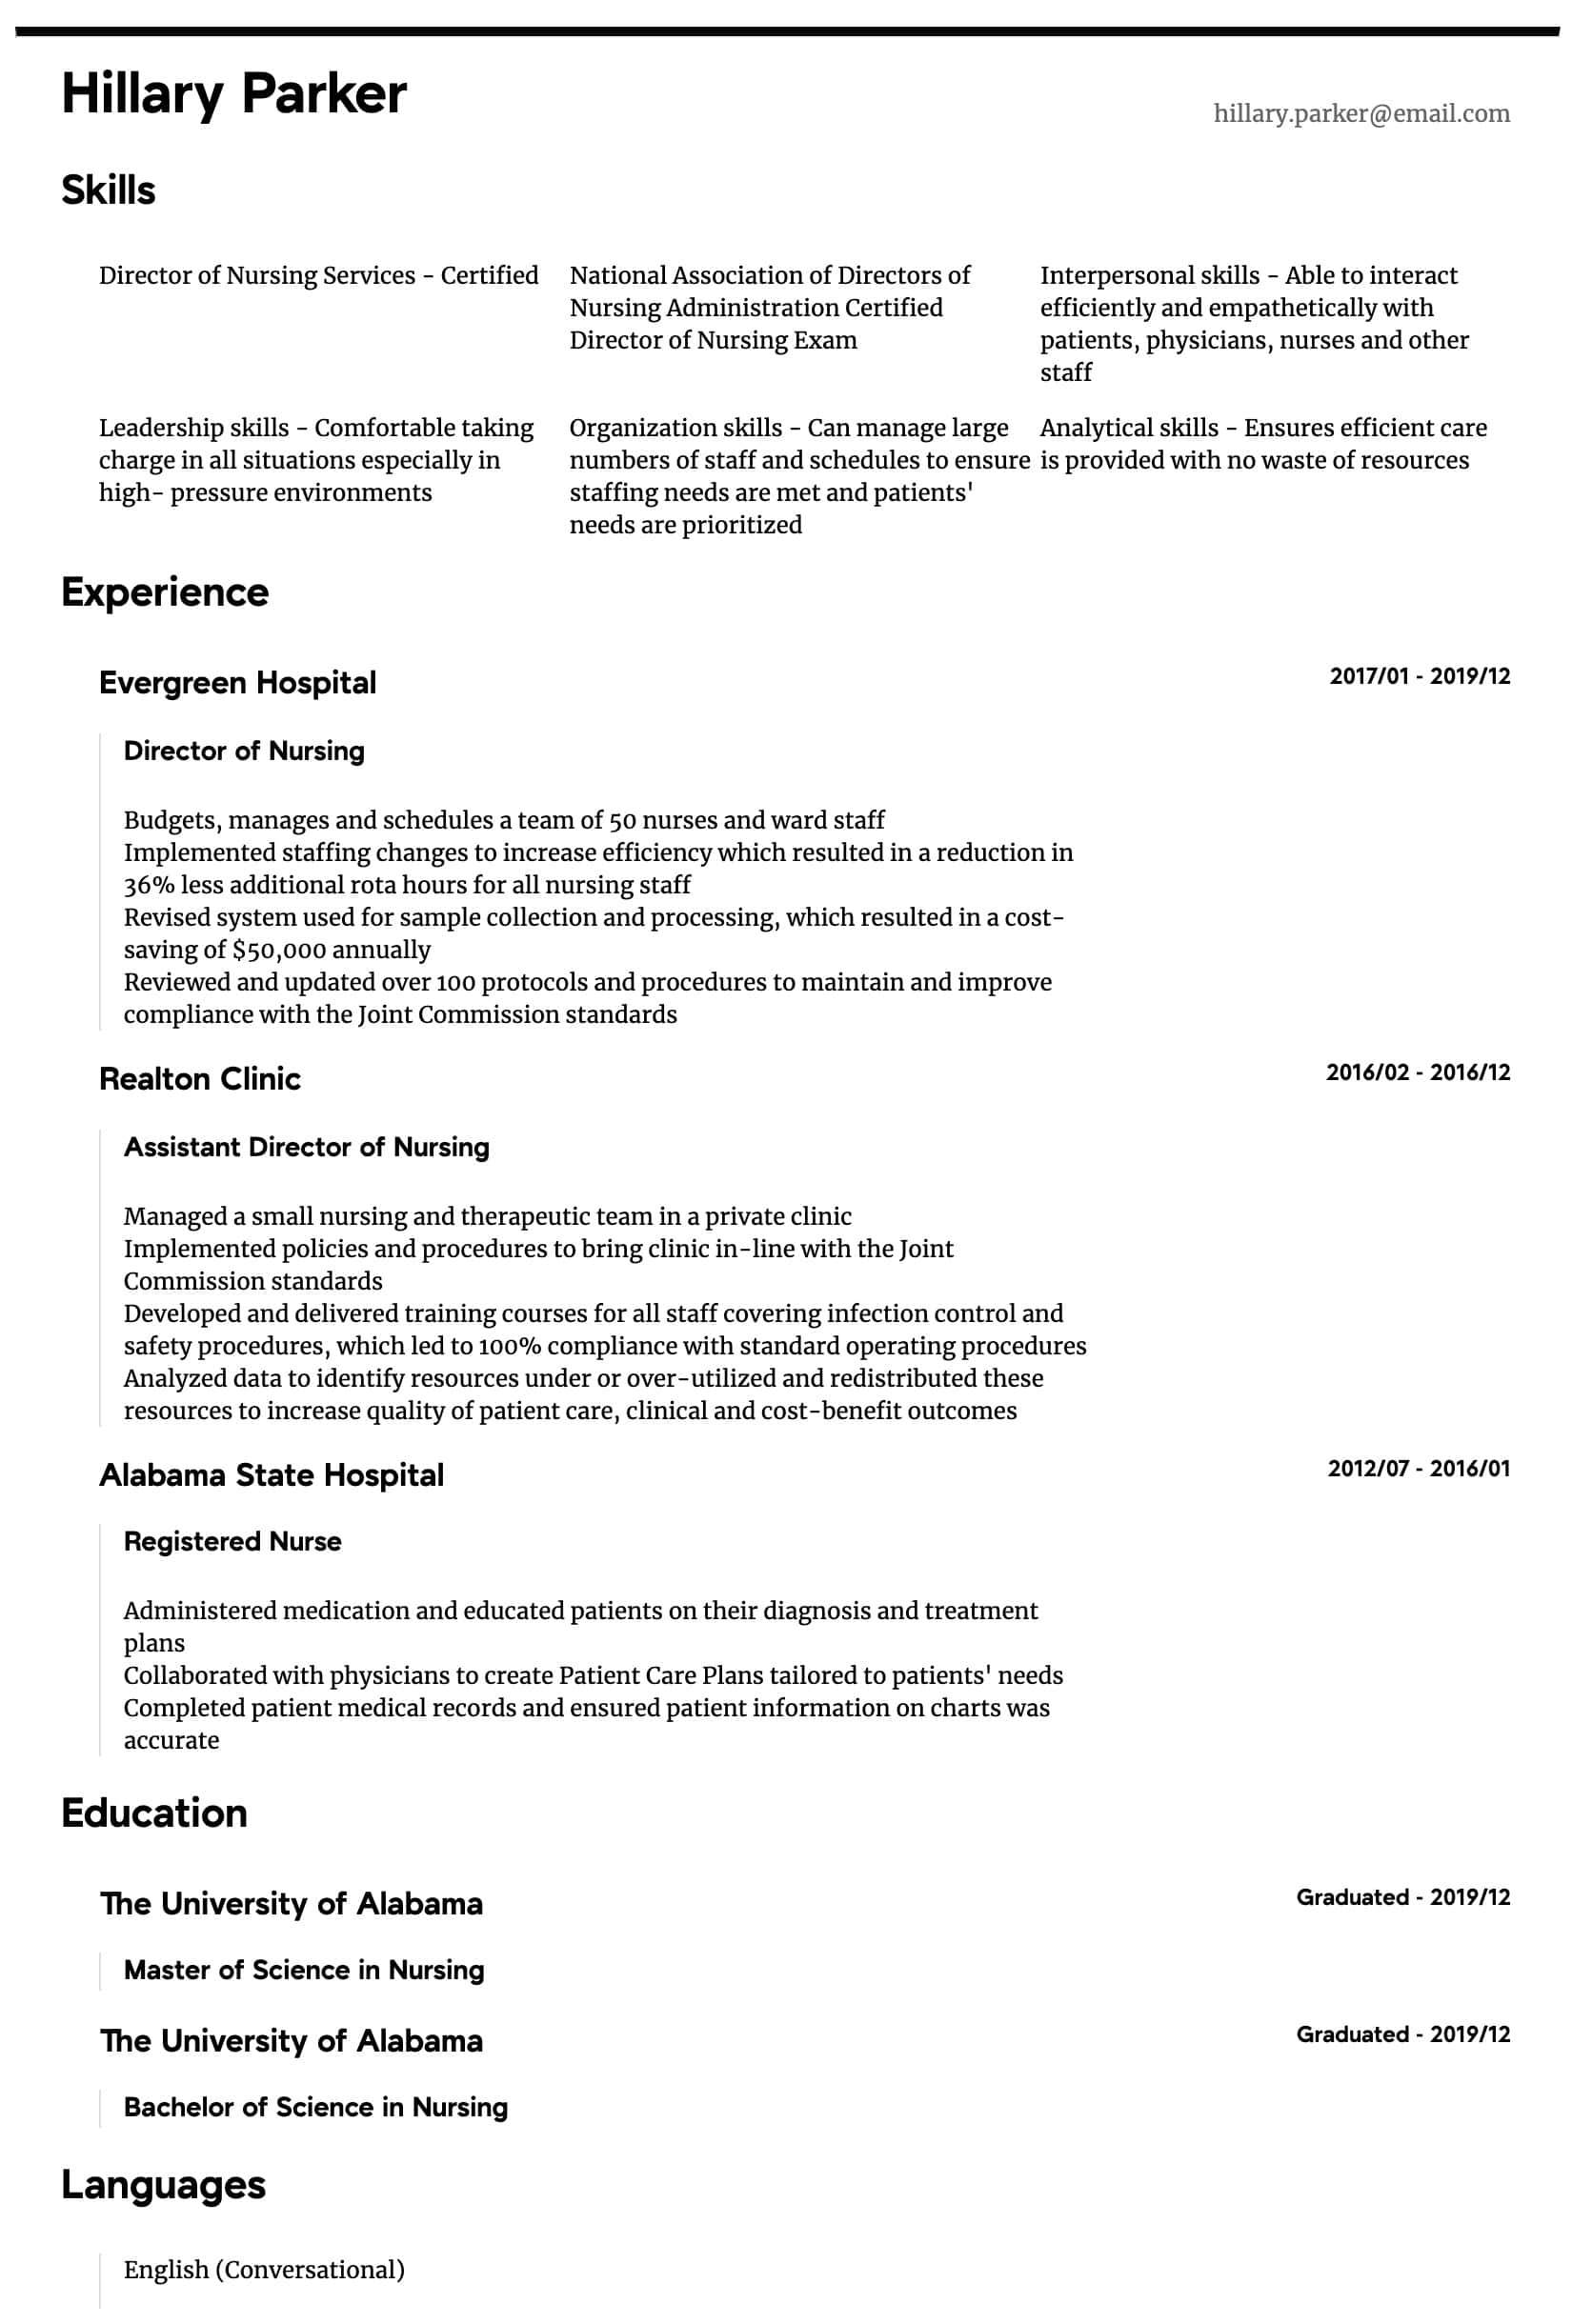 director of nursing resume samples all experience levels action verbs for intermediate Resume Action Verbs For Nursing Resume